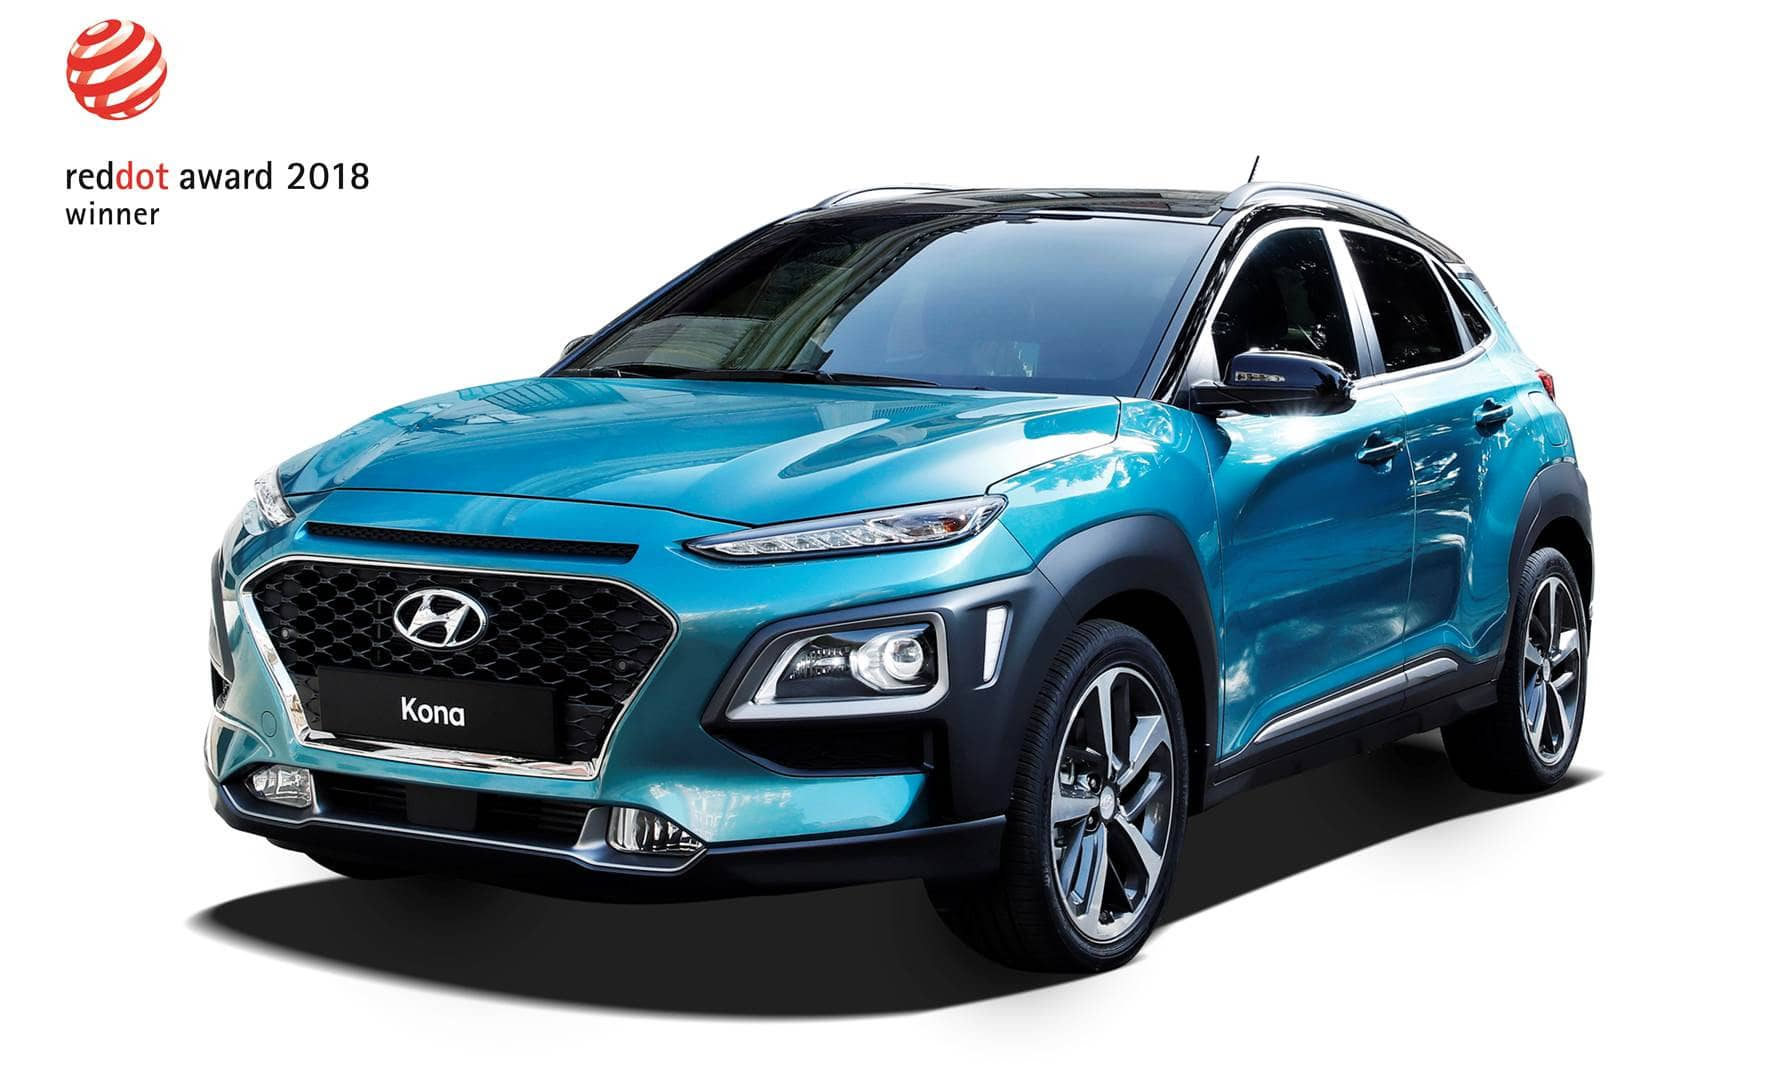 All-New Hyundai NEXO and Hyundai Kona honored with prestigious Red Dot Award